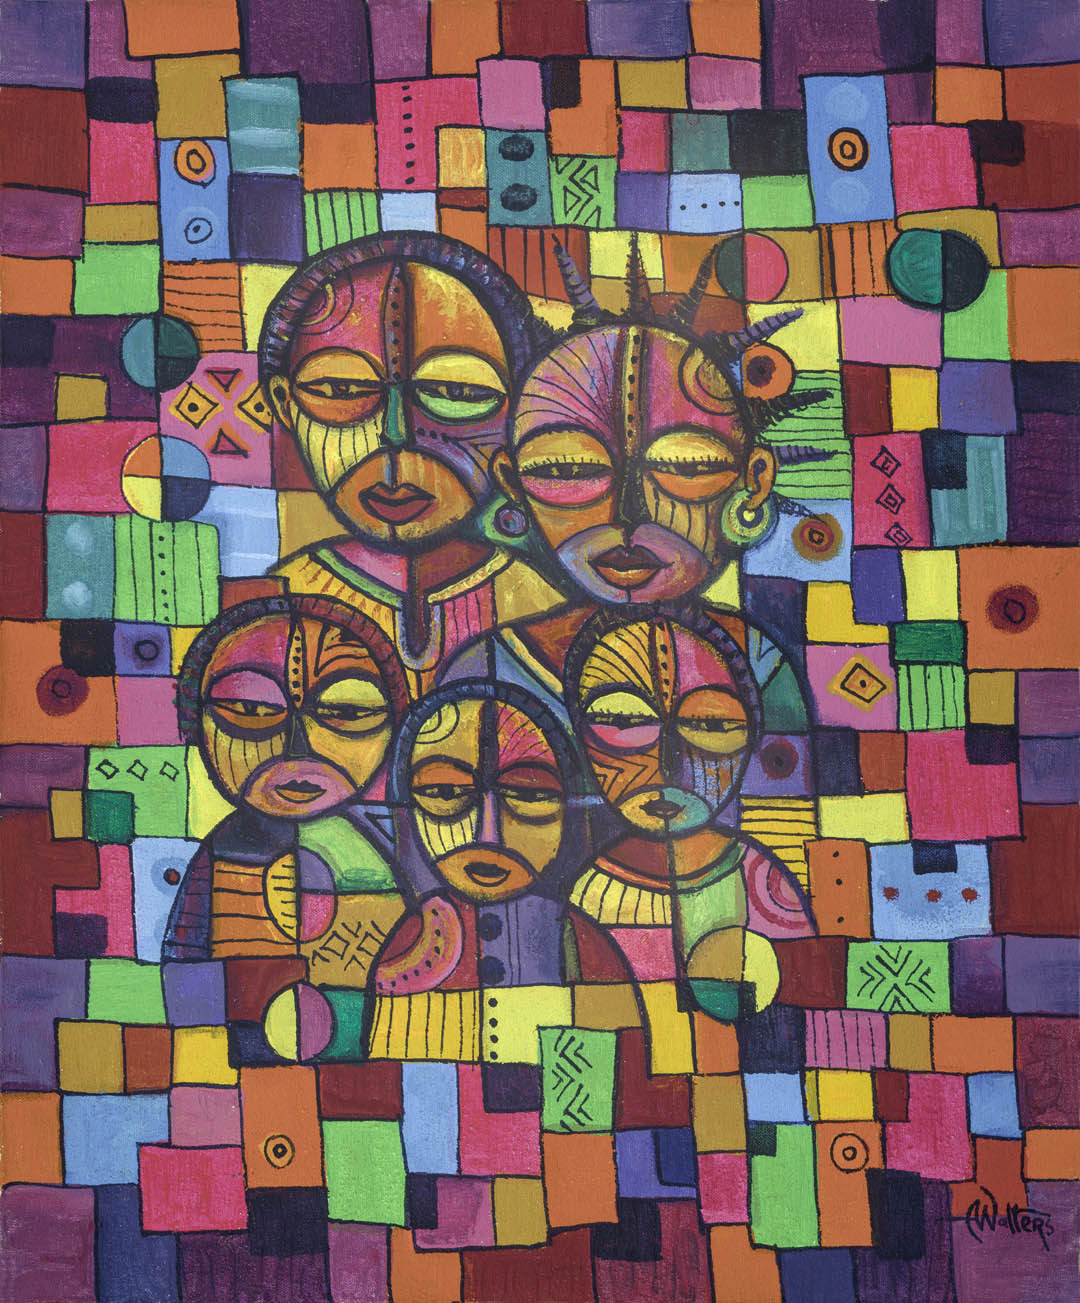 Painted in wildly vivid acrylic colors, this original painting from Central Africa is titled Happy Family VI.